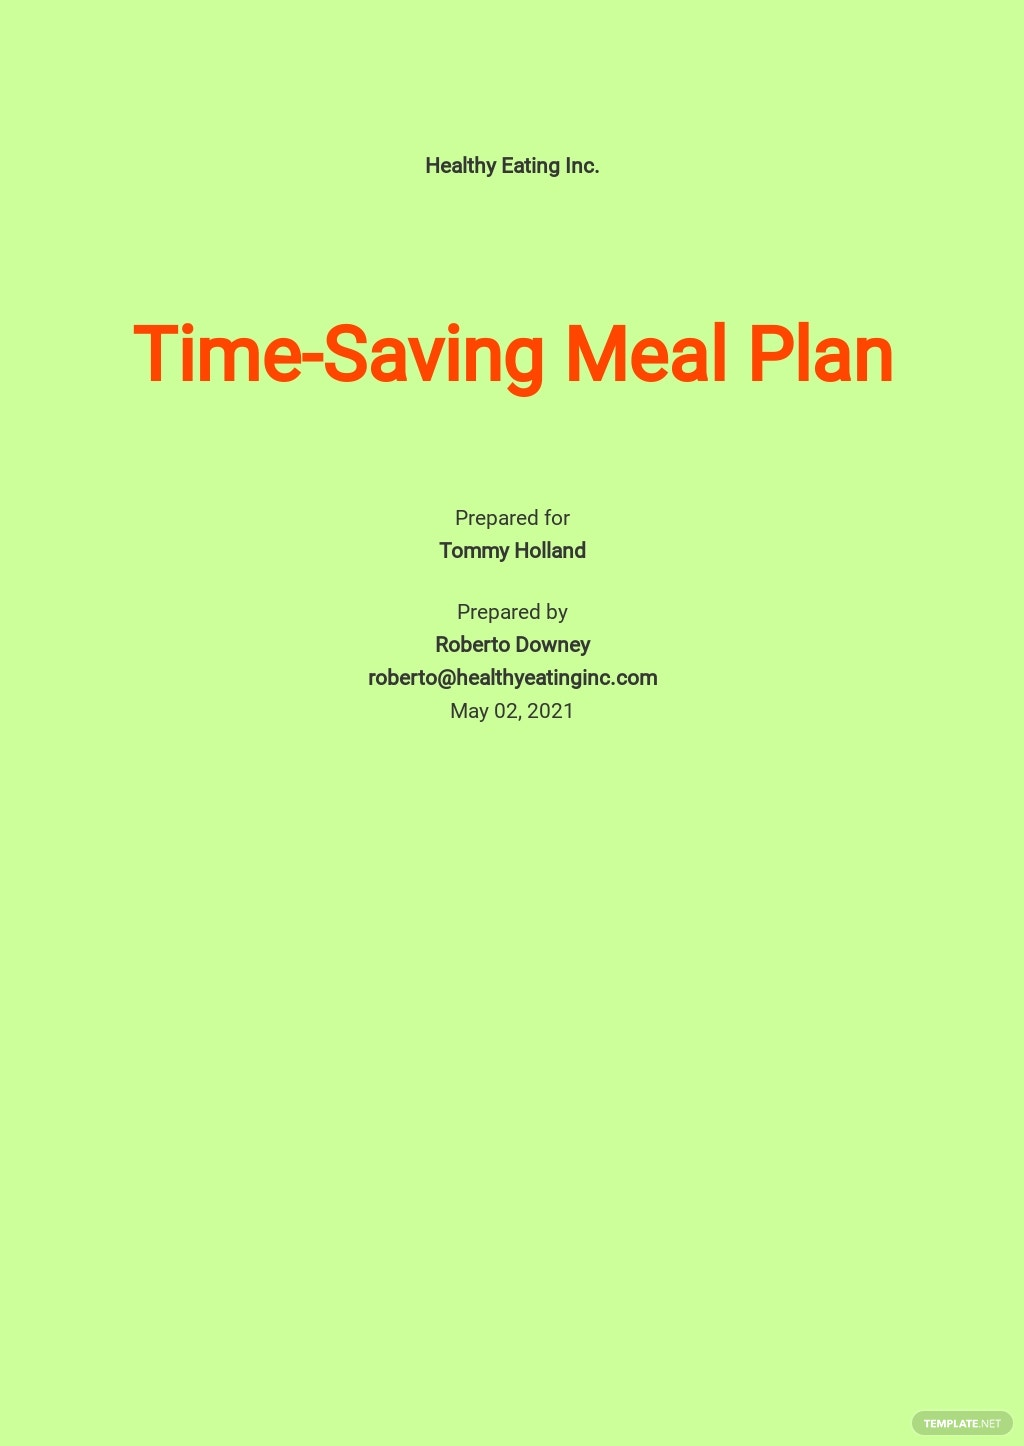 Sample Meal Plan Template [Free PDF] - Google Docs, Word, Apple Pages, PDF